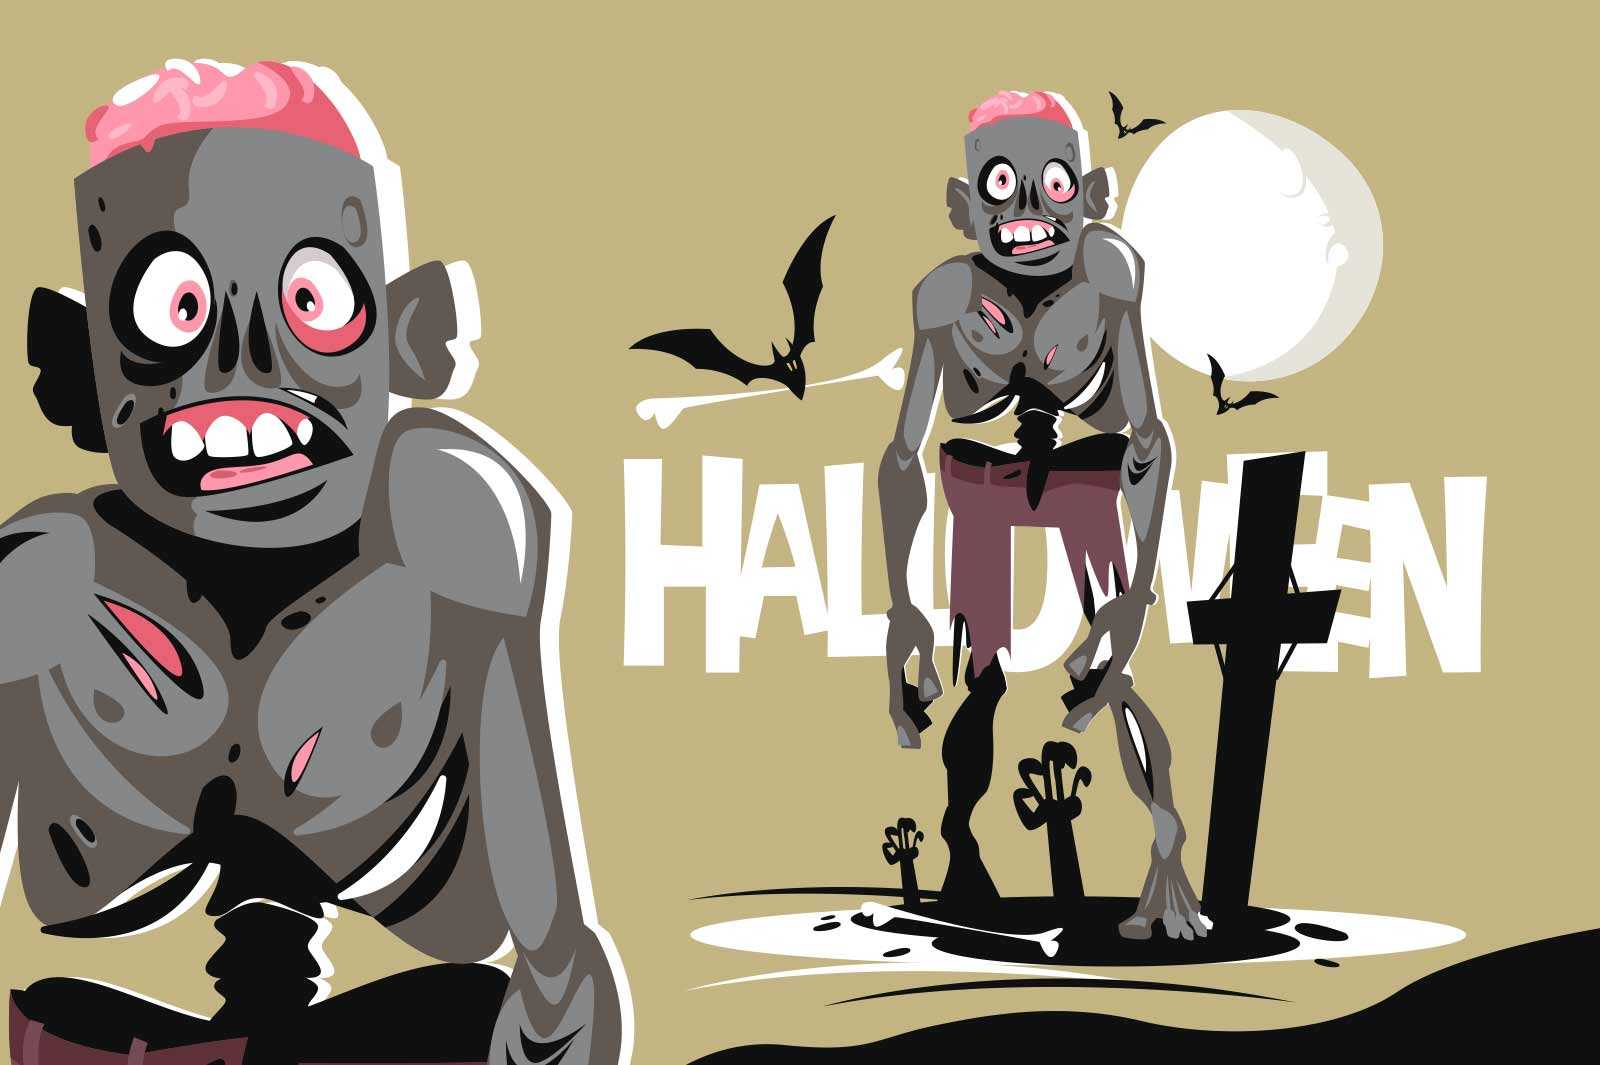 Scary walking zombie character vector illustration. Flying bats and creepy atmosphere on cemetery flat style. Happy halloween holiday concept. Isolated on green background